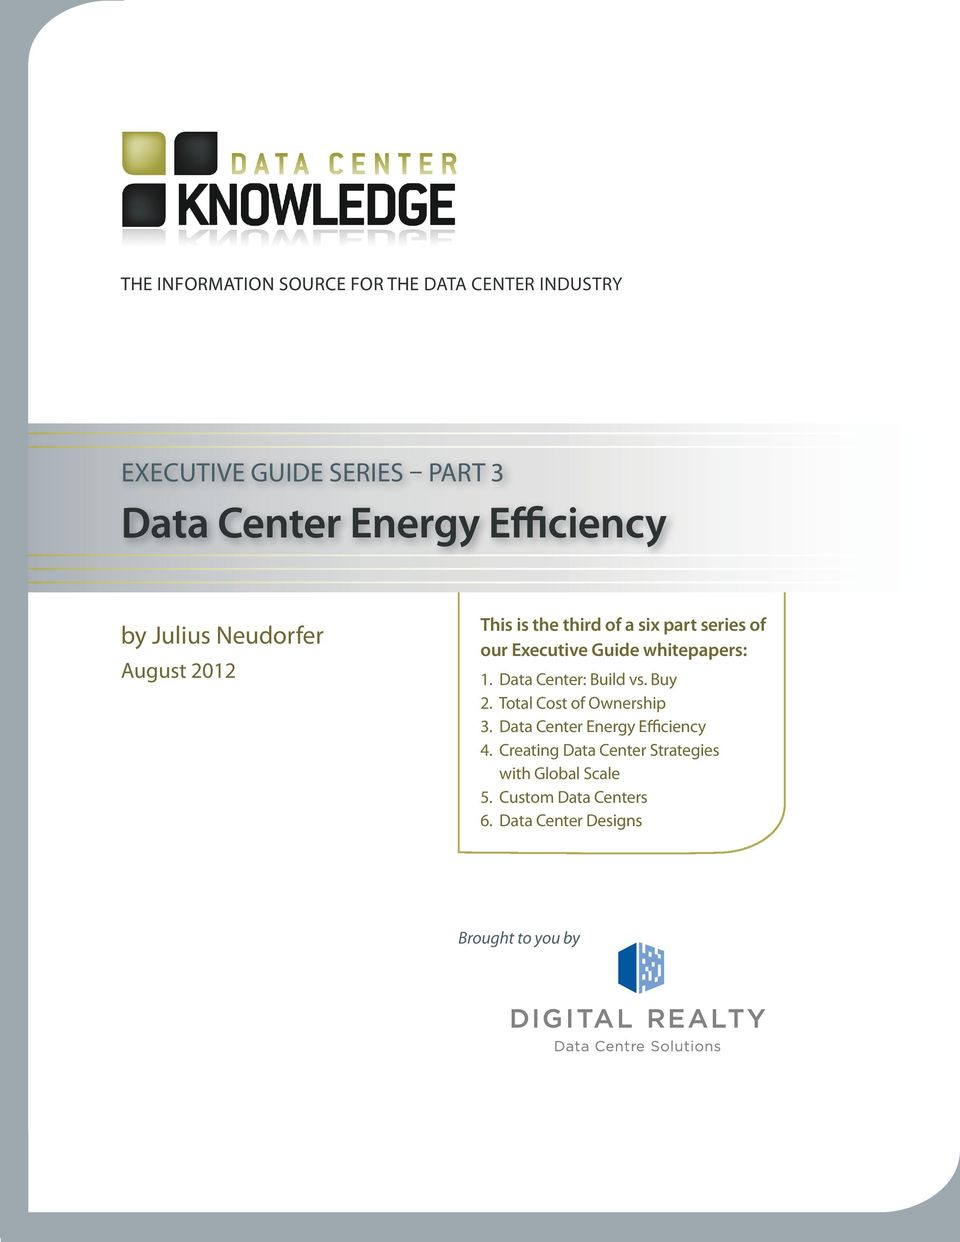 whitepapers: 1. Data Center: Build vs. Buy 2. Total Cost of Ownership 3. Data Center Energy Efficiency 4.